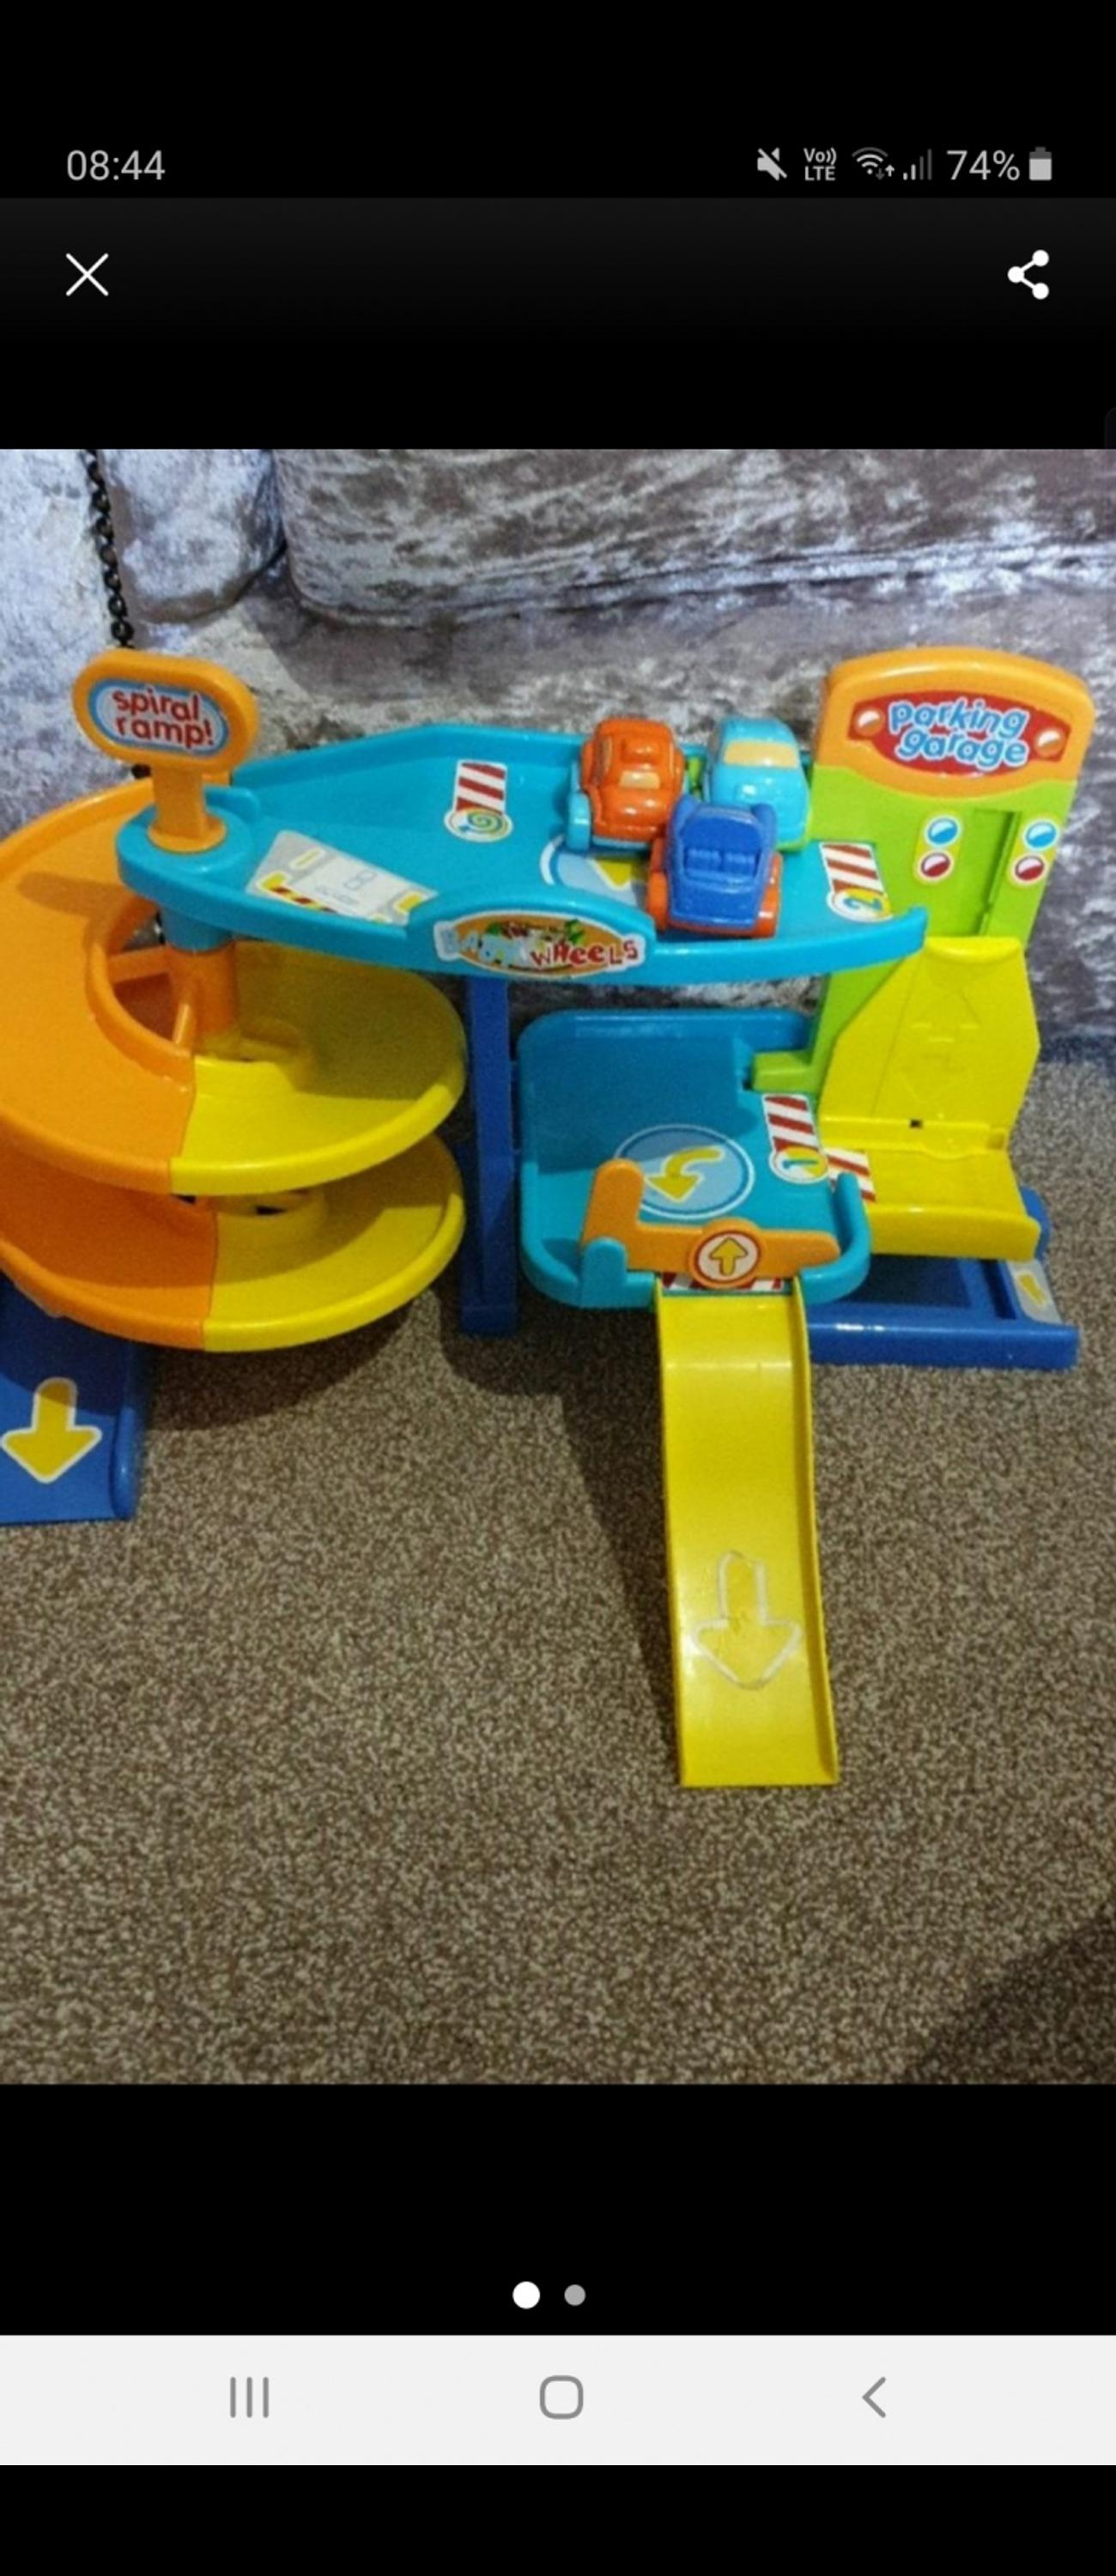 played with in good condition comes with 3 little cars everything dismantles easily